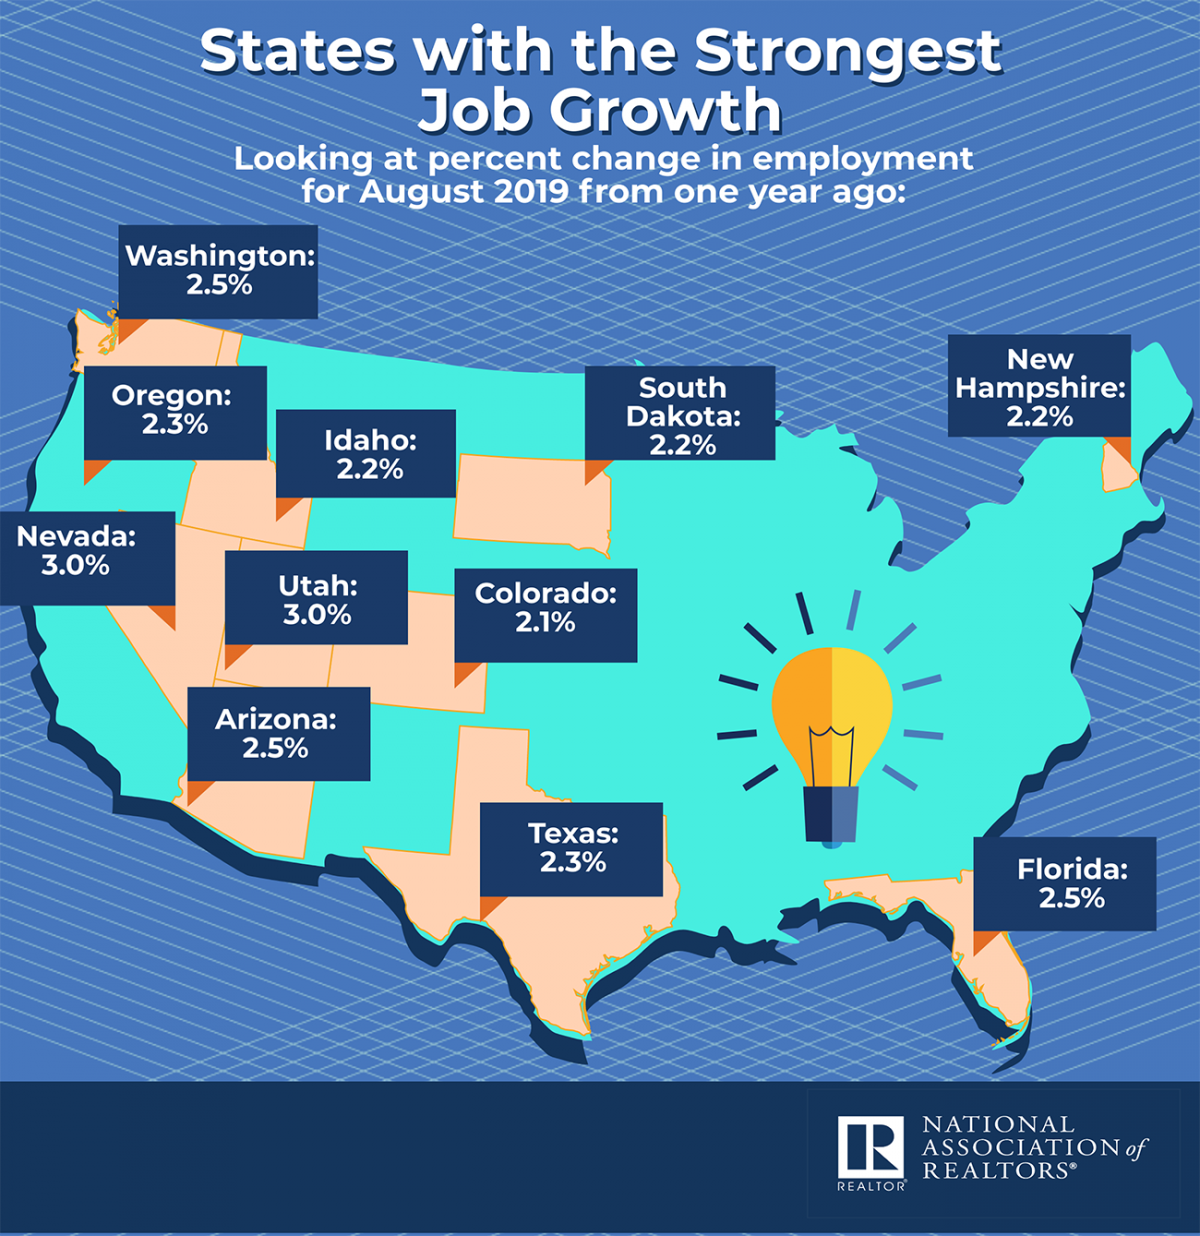 Infographic: States With the Strongest Job Growth in August 2019